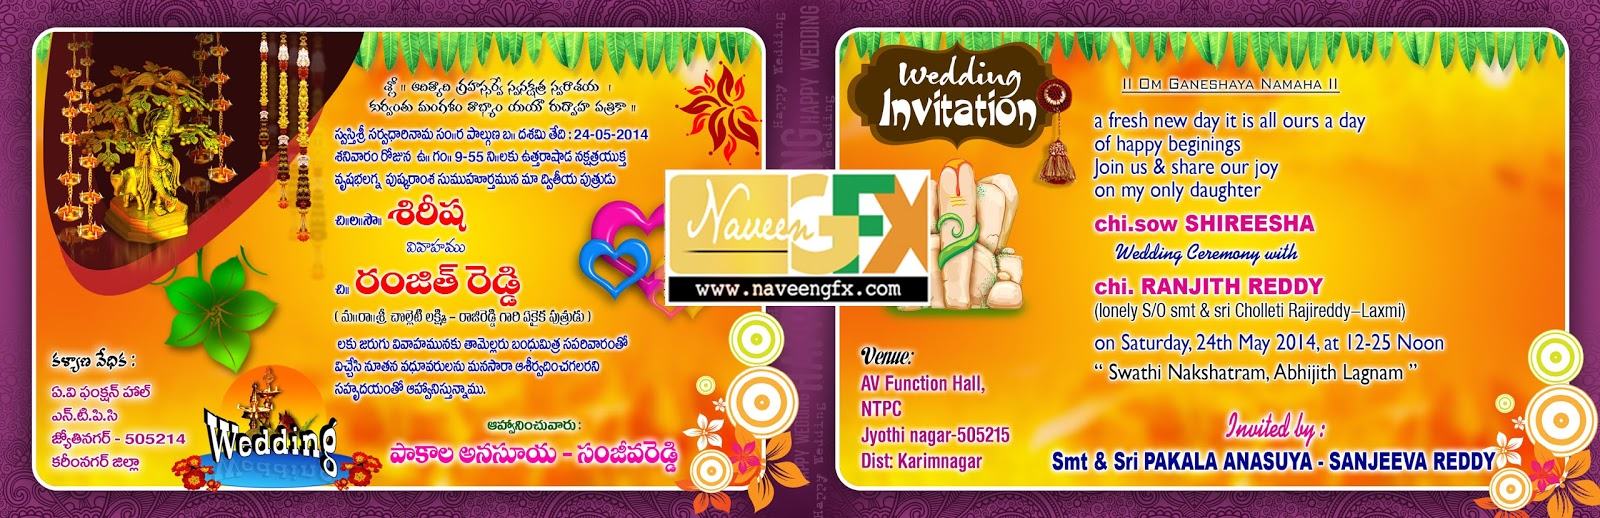 Wedding invitation wording psd templates free download naveengfx indian wedding invitation card psd template ideas naveengfx stopboris Image collections